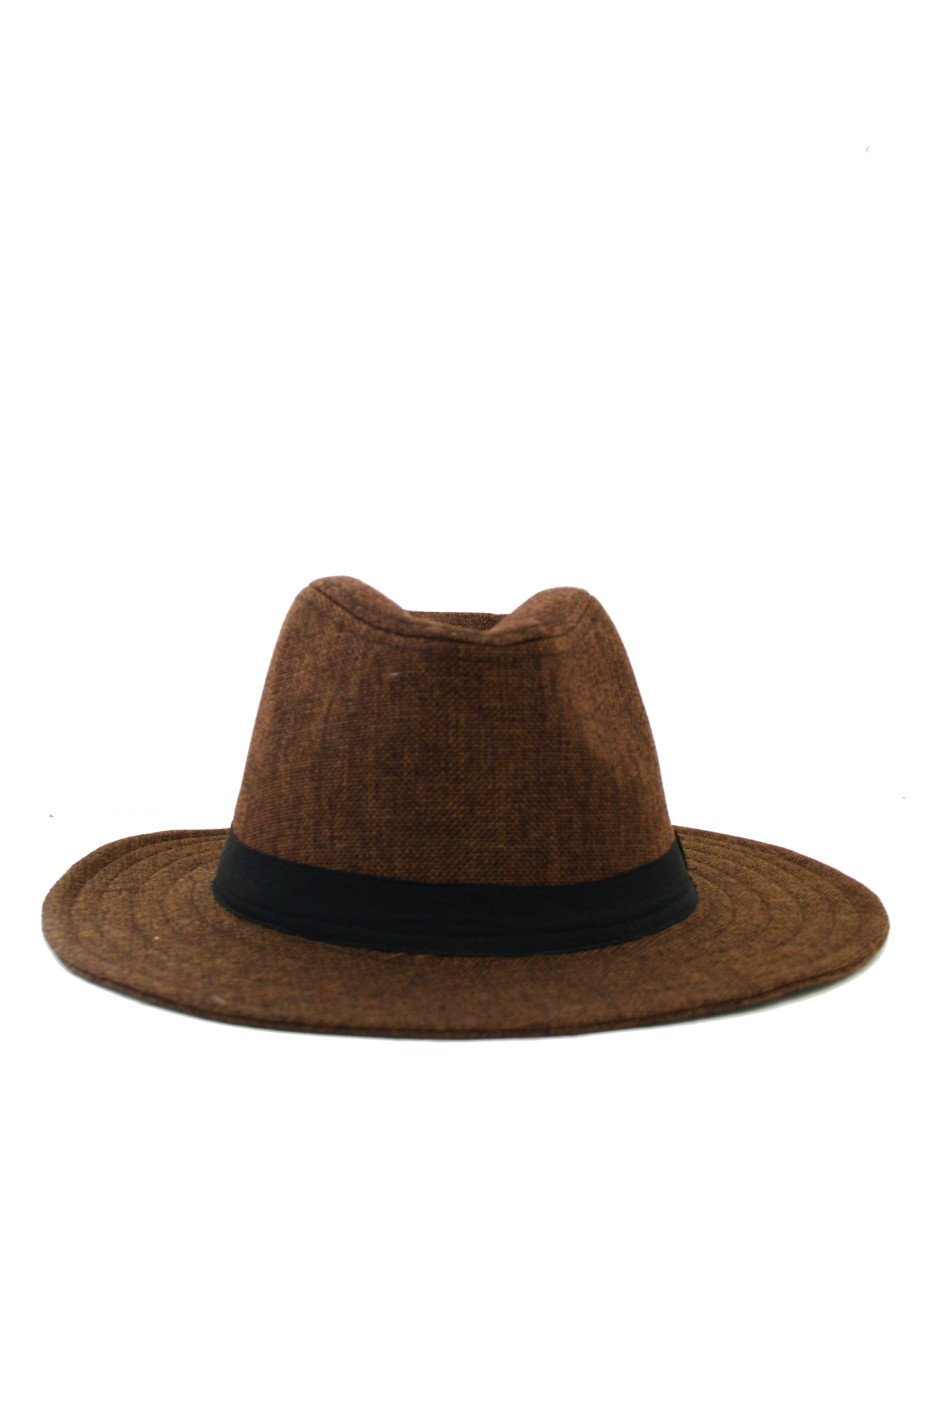 FLAT BRIM SAFARI HAT - Haute & Rebellious